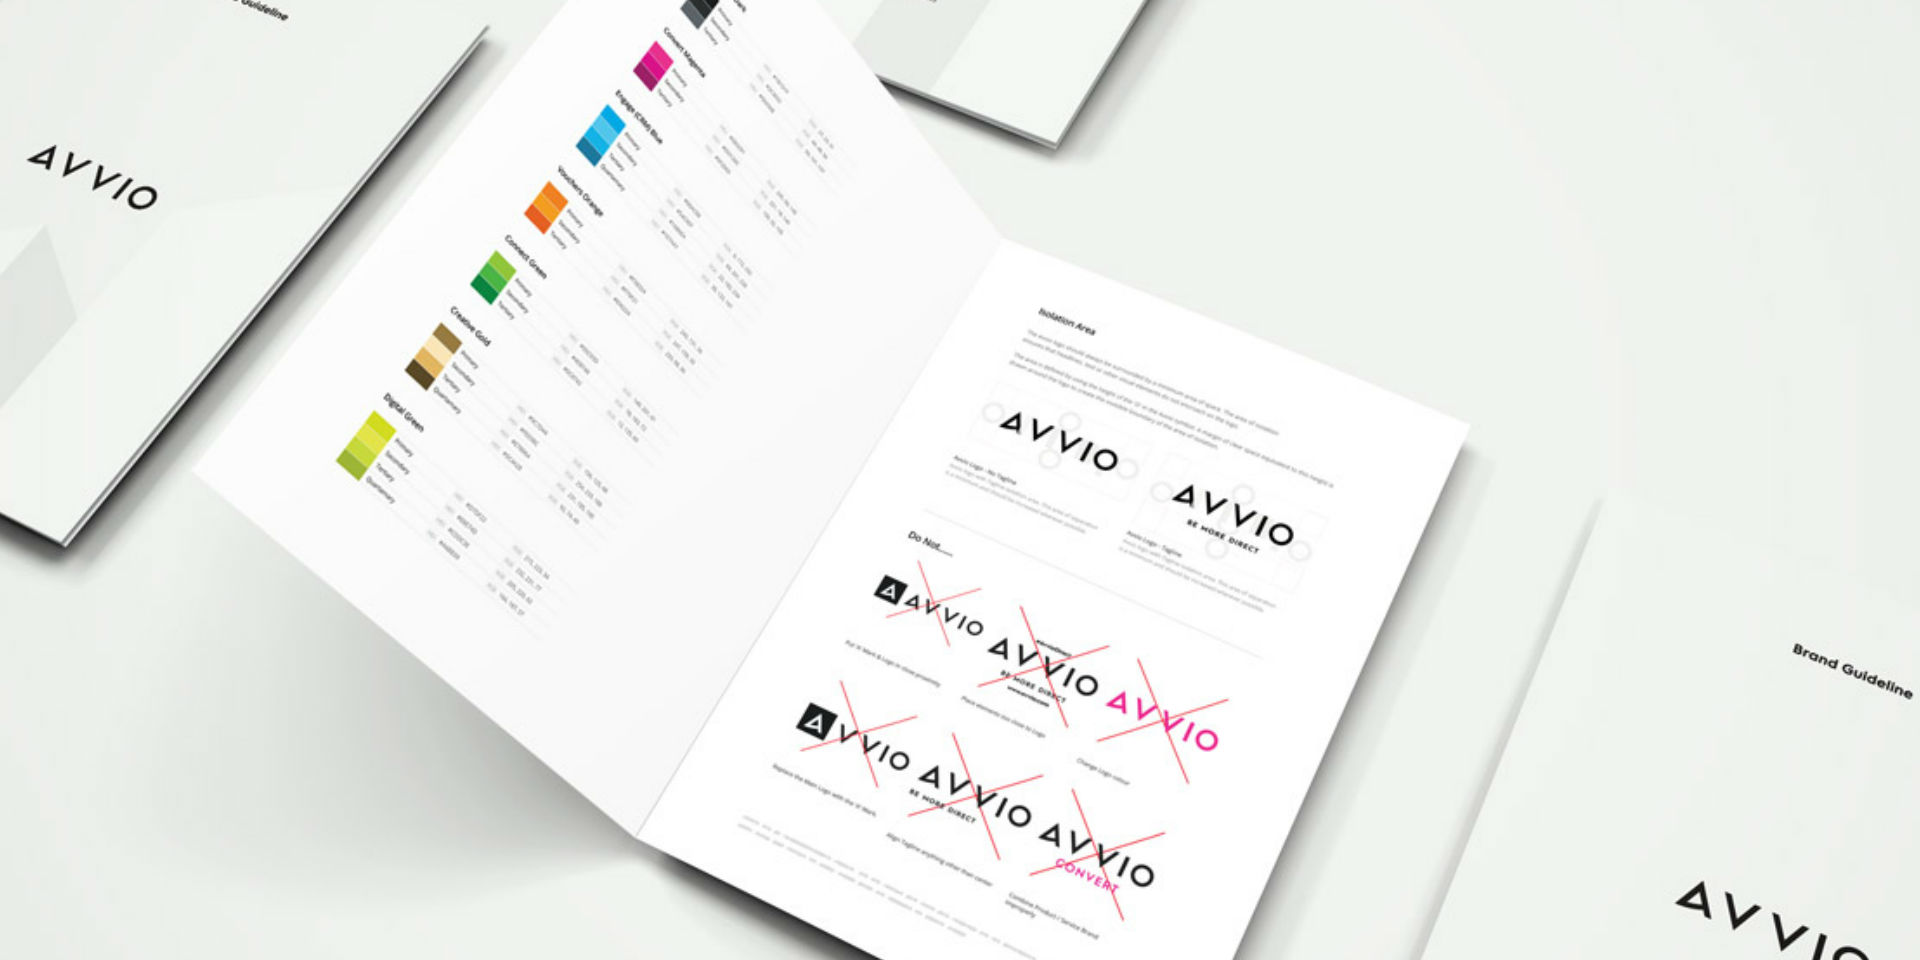 Avvio's booking platform will help expand your hotel's direct business